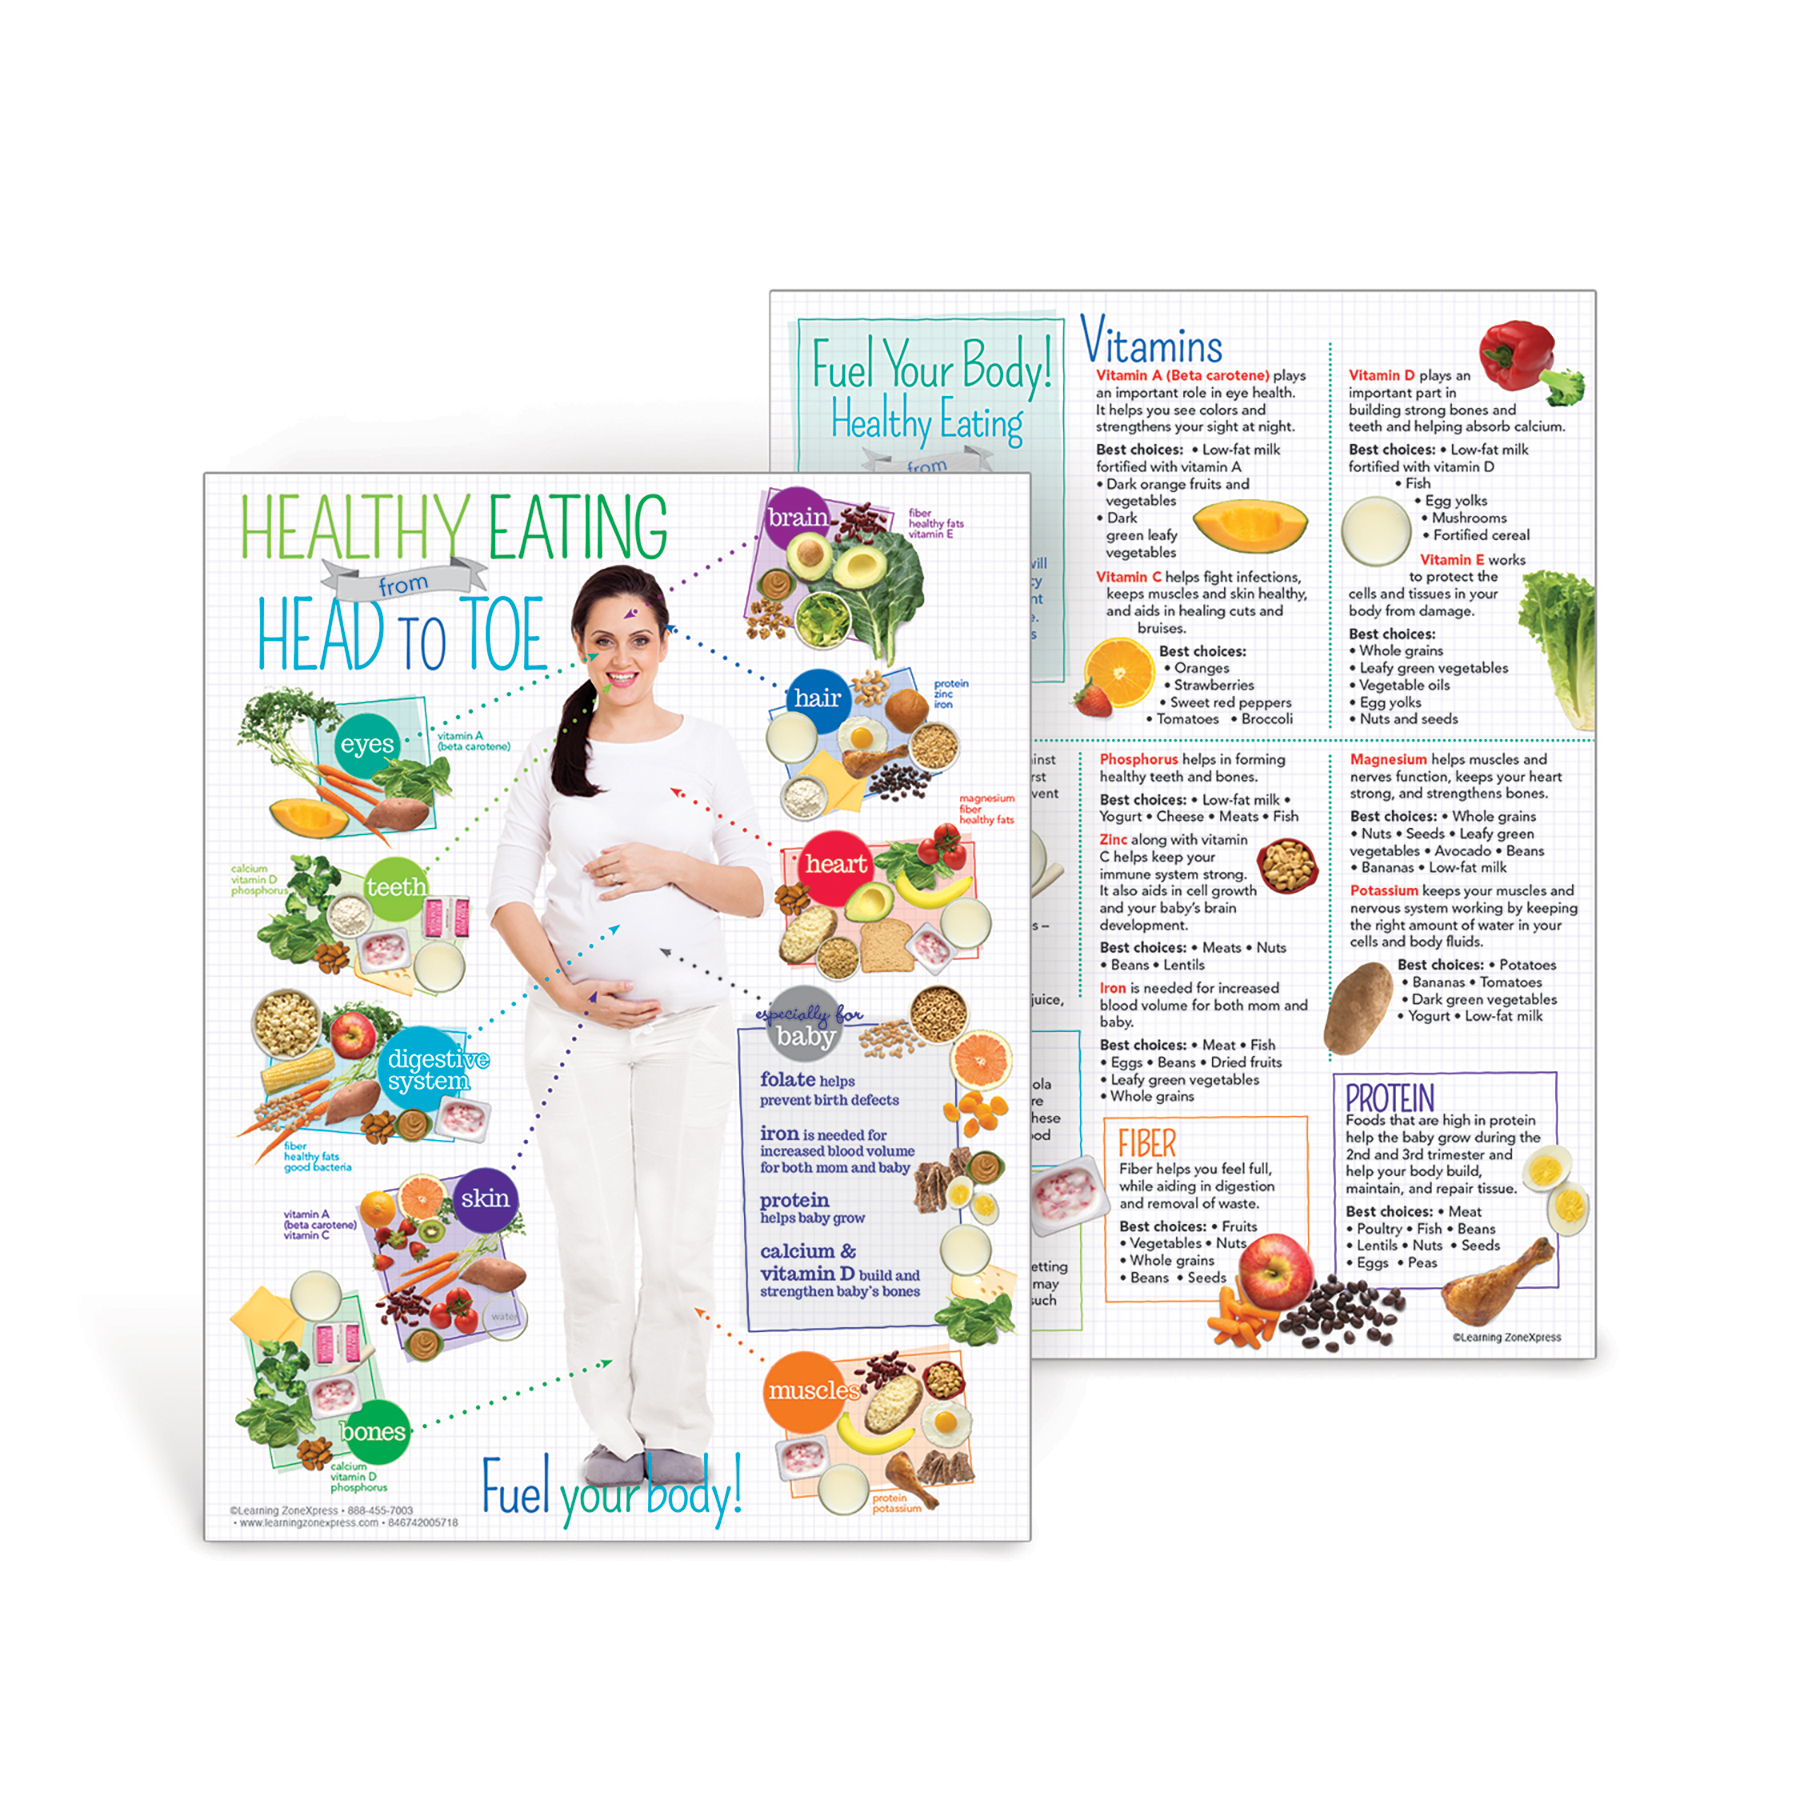 Healthy Eating Head to Toe for Expectant Mothers 2-sided Tear Pad front and back overlapping, Childbirth Graphics 45085